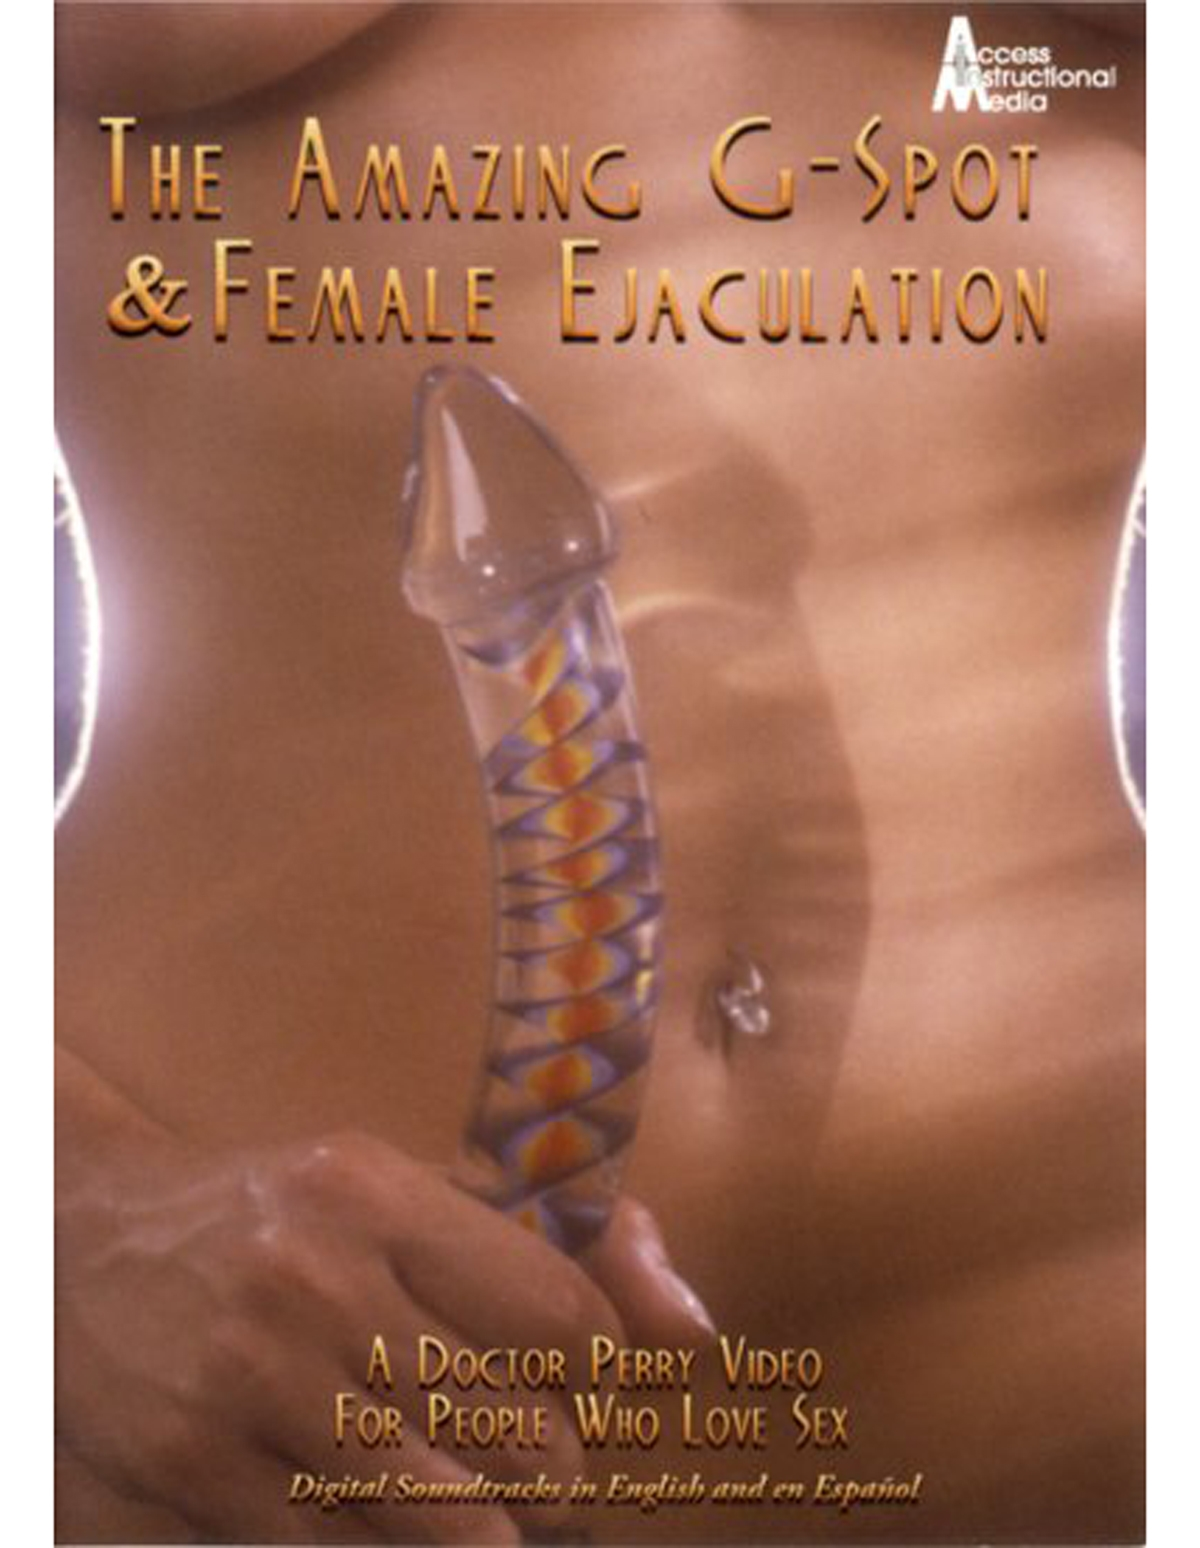 Amazing G Spot & Female Ejaculation Dvd